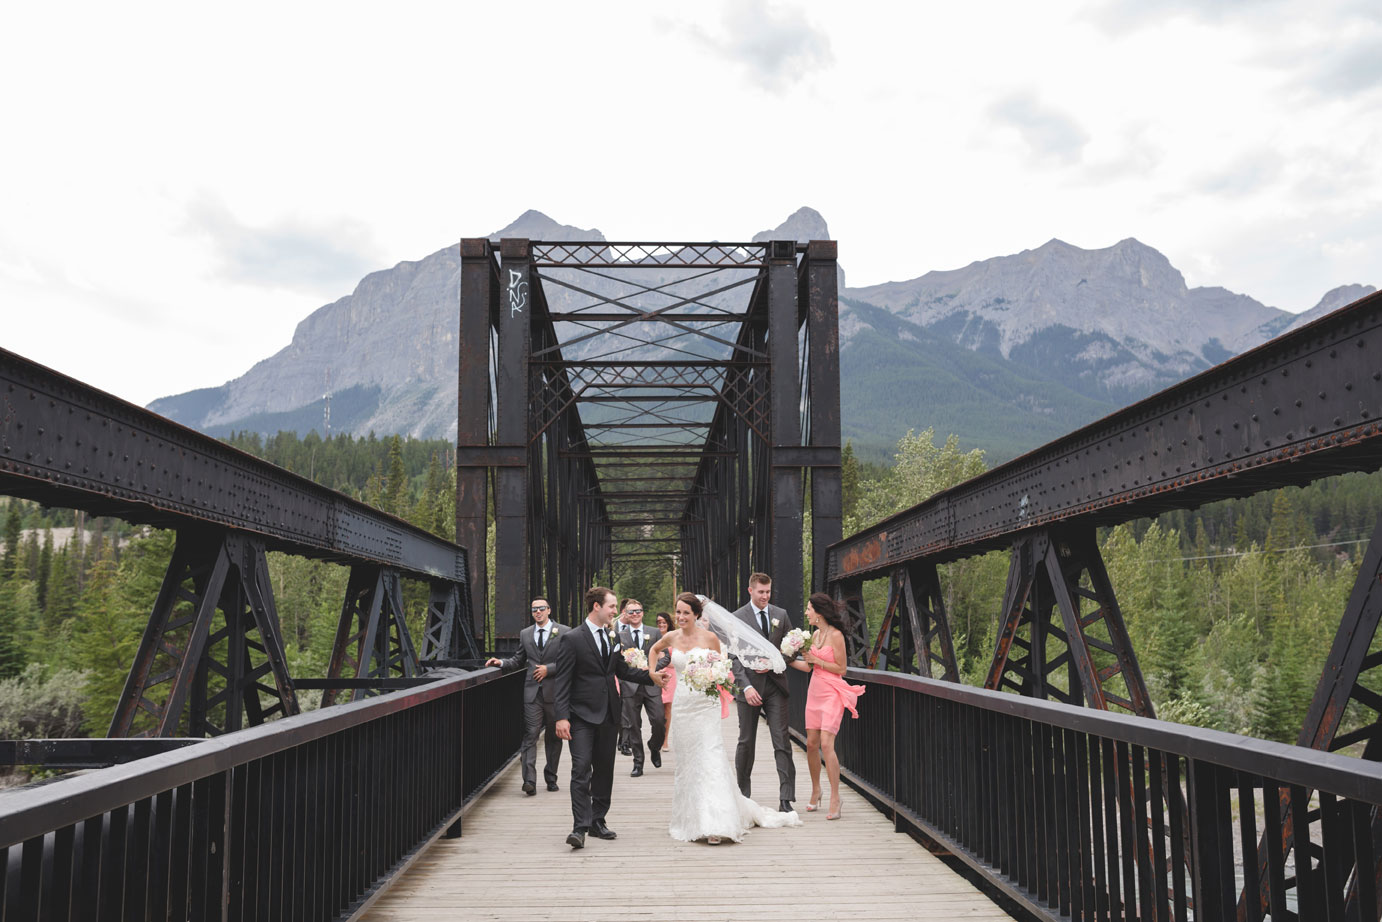 A Summer Wedding in the Candian Rockies